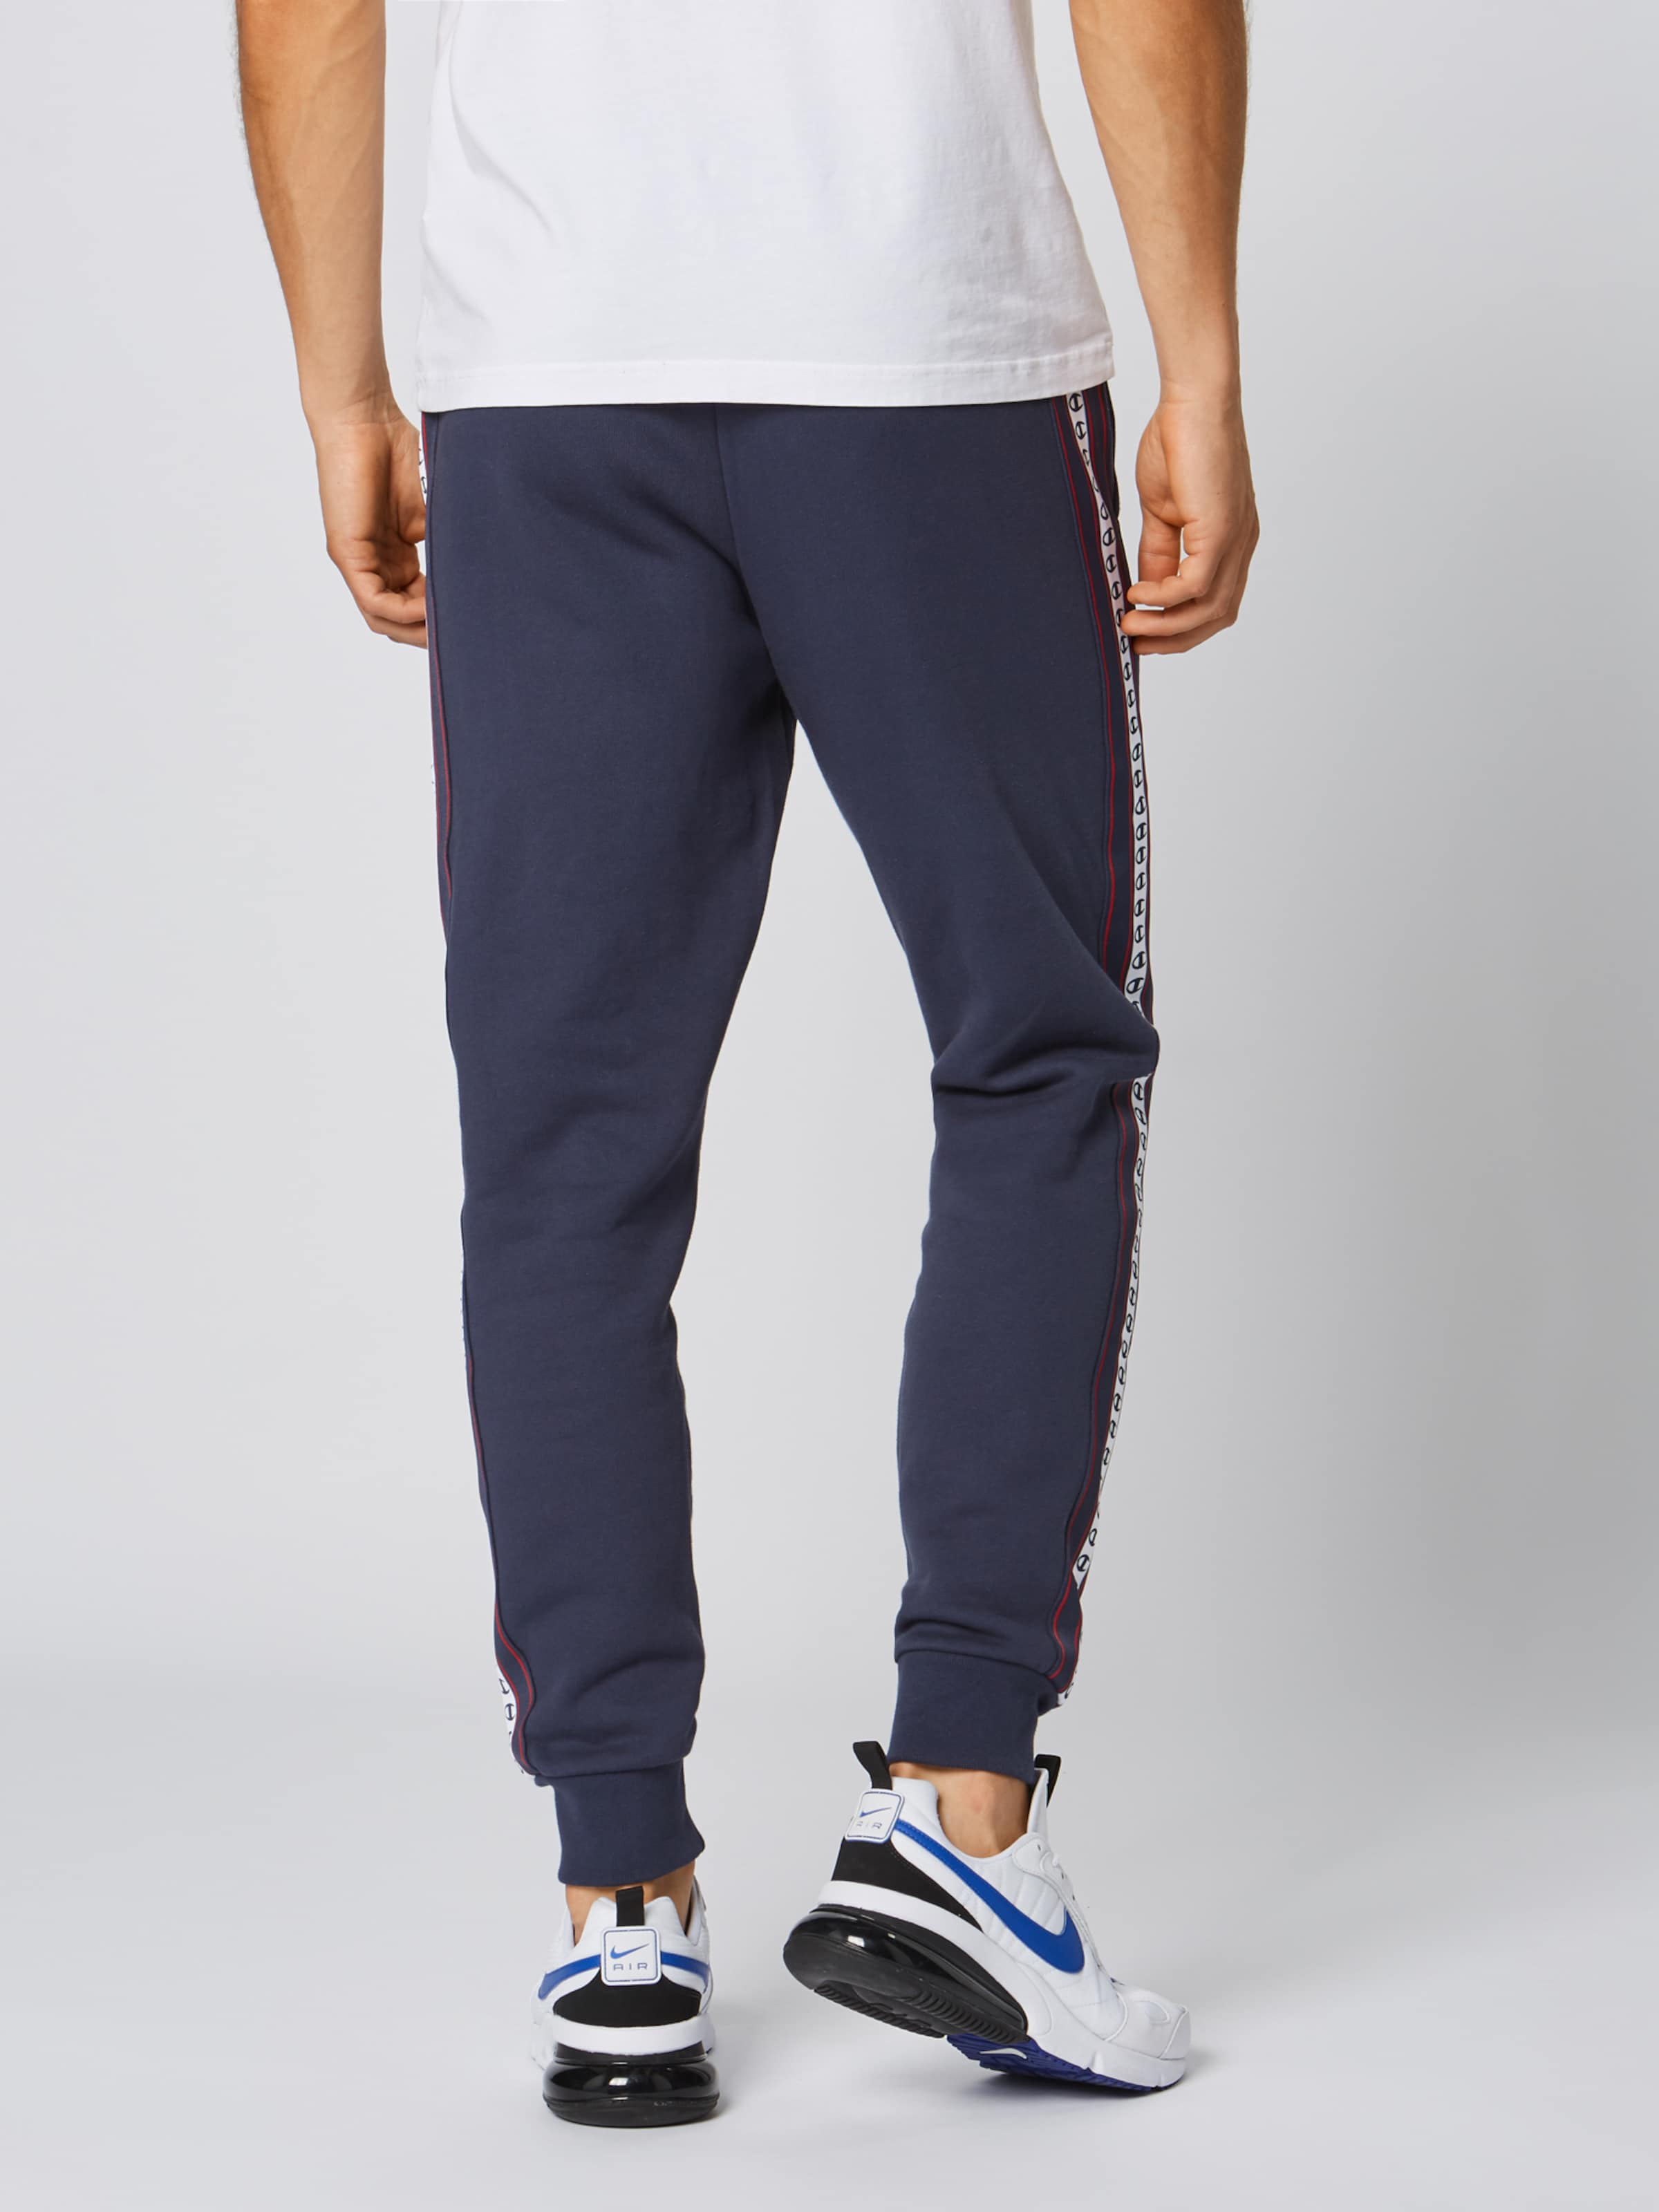 Athletic Bleu Champion En Nuit Authentic Cuff' Pantalon Apparel 'rib yP8OmvN0nw